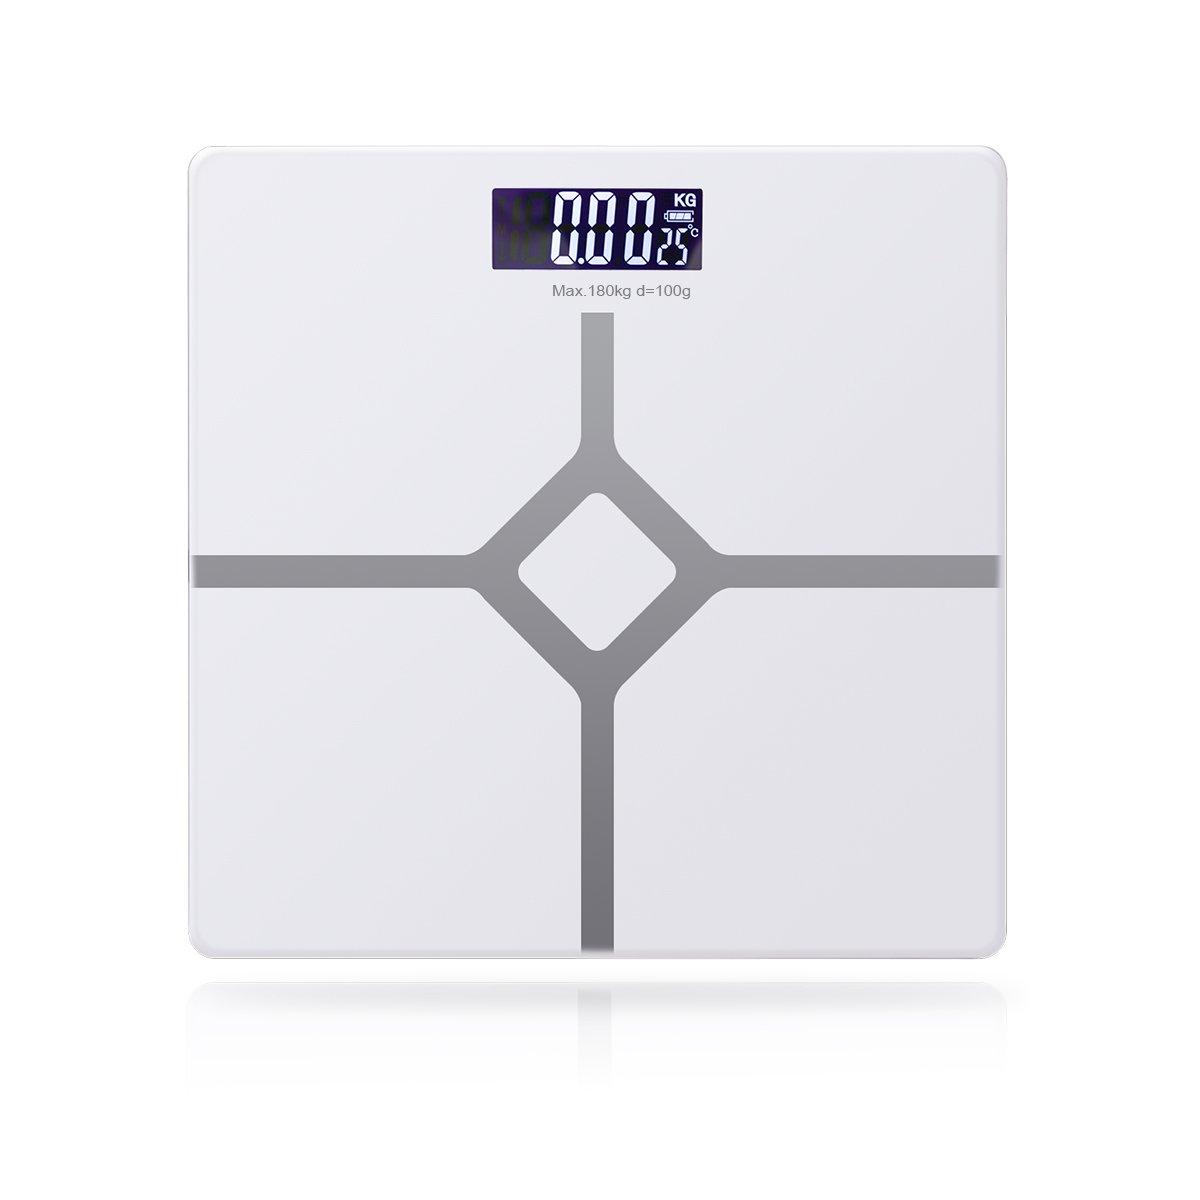 Baban Digital Body Weight Bathroom Scales, Step-On Technology for Instant Weight Reading, Environmentally Friendly USB Charging Electronic Scale(USB Cable Supplied), Backlit LED Auto on/off Easy Read Display, Max Capacity 180kg, White